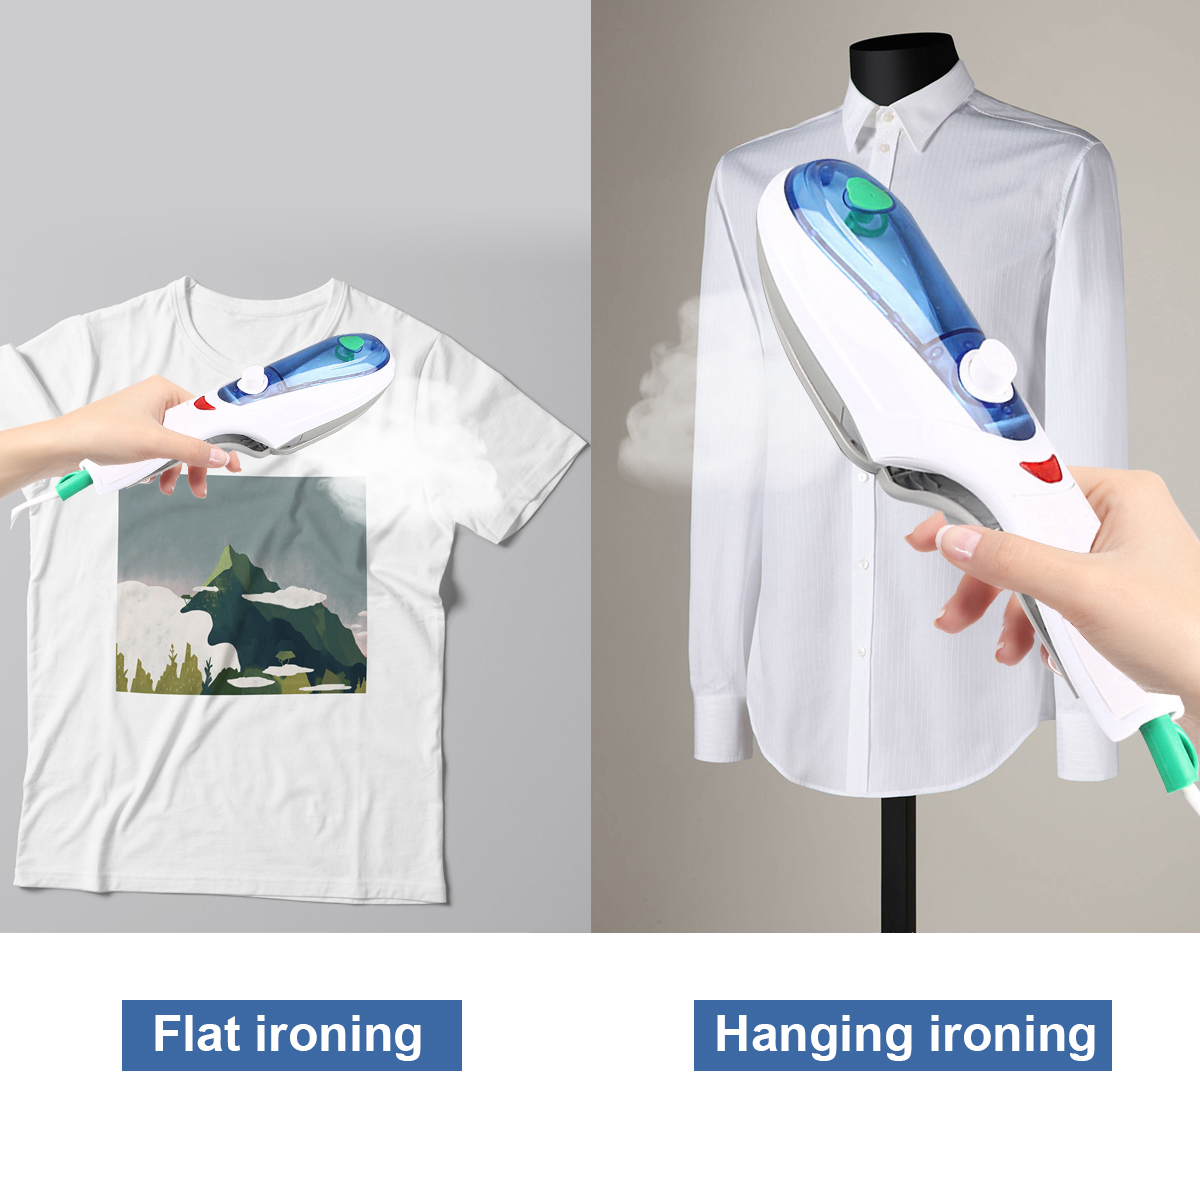 1000W Handheld Garment Steamer Iro Brush Foldable PortableSteam Irons for Travel Home Household Ironing Clothes